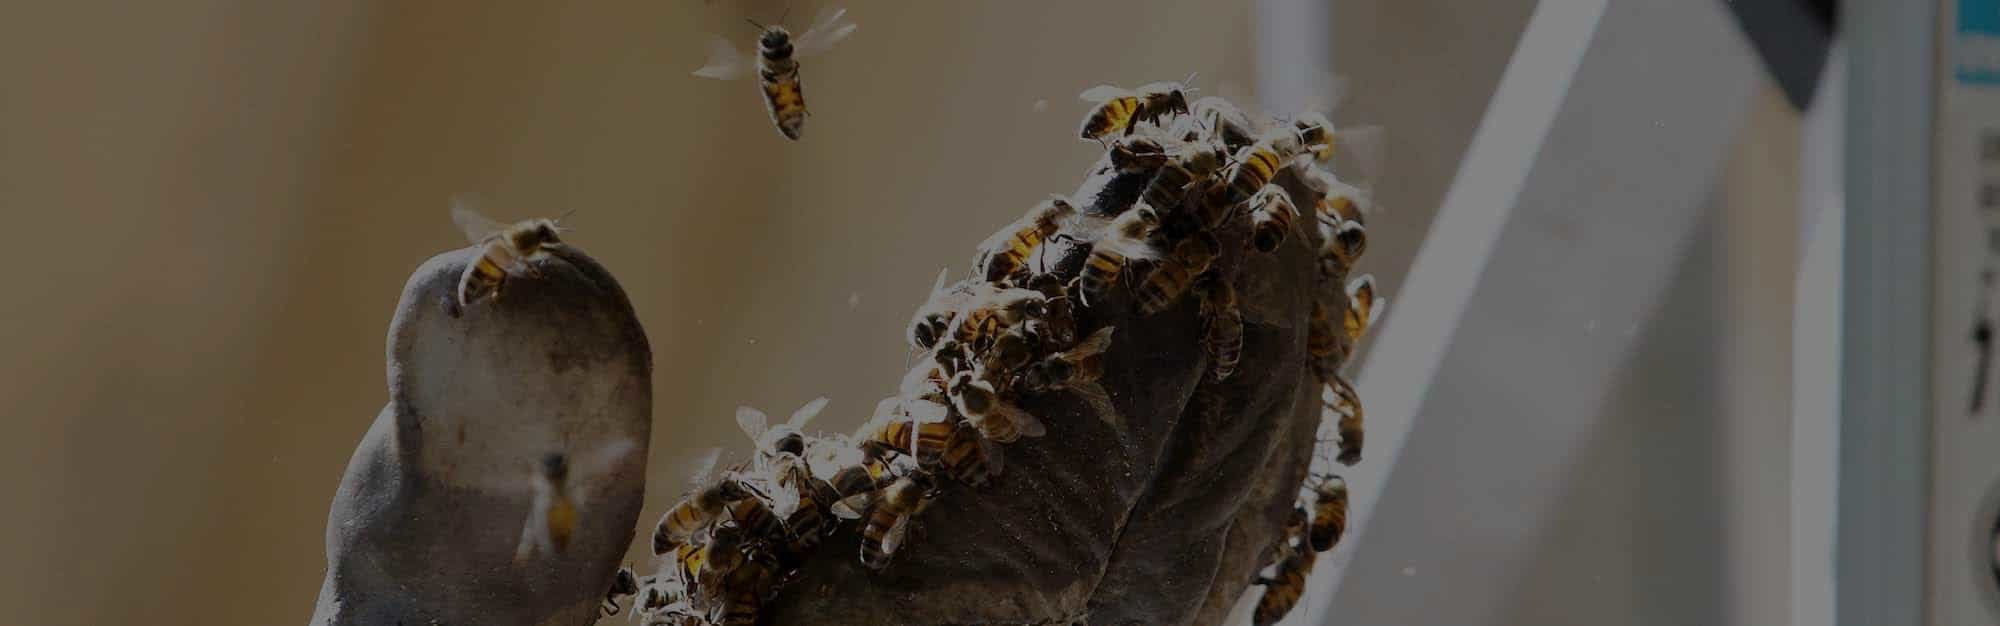 DELPA-Bee-Removal-Experts-in-Houston-Texas-v005